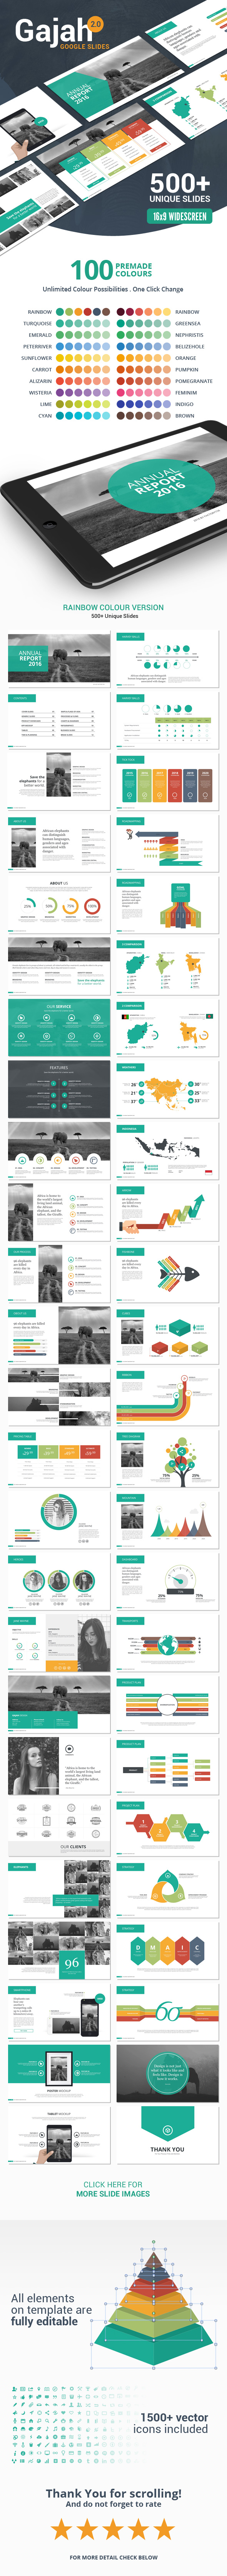 gajah | google slides templatefactory738 | graphicriver, Presentation templates